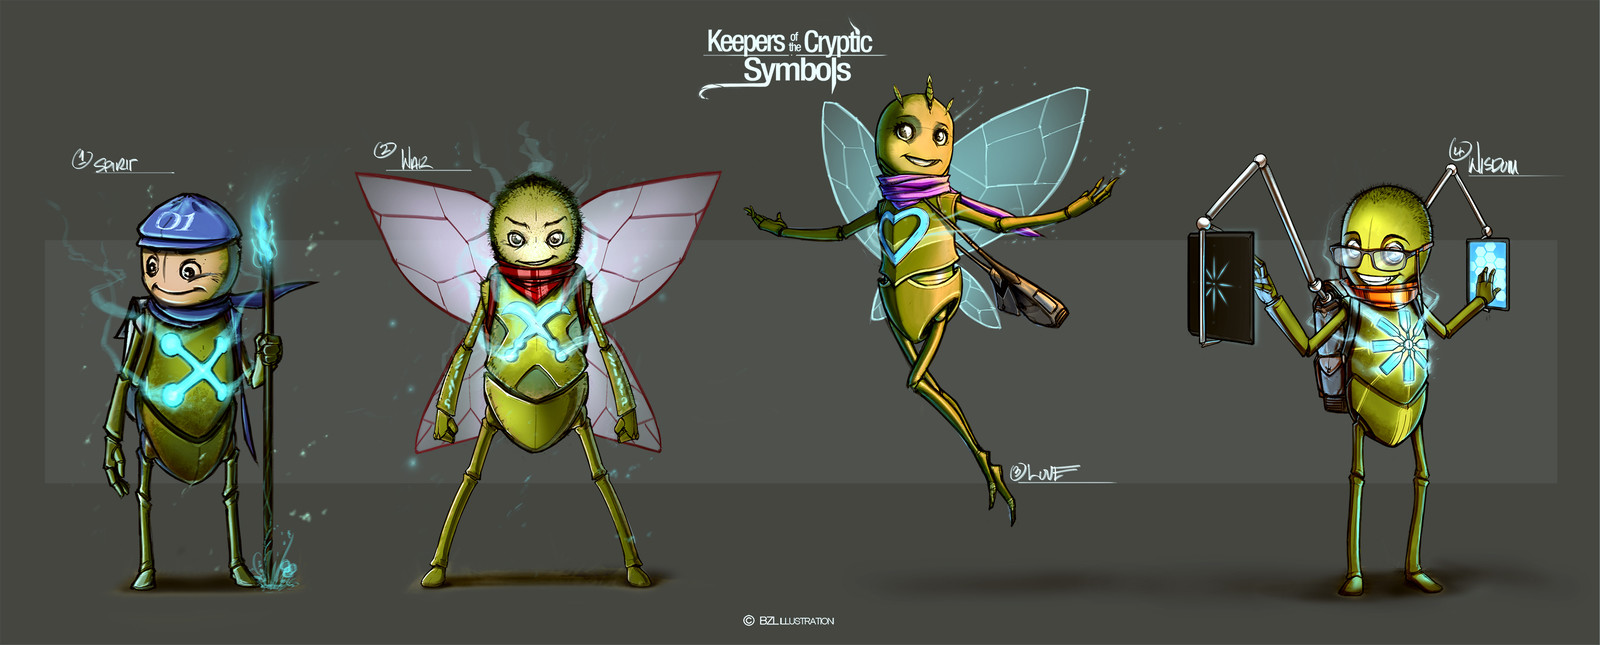 Keepers of the Cryptic Symbols